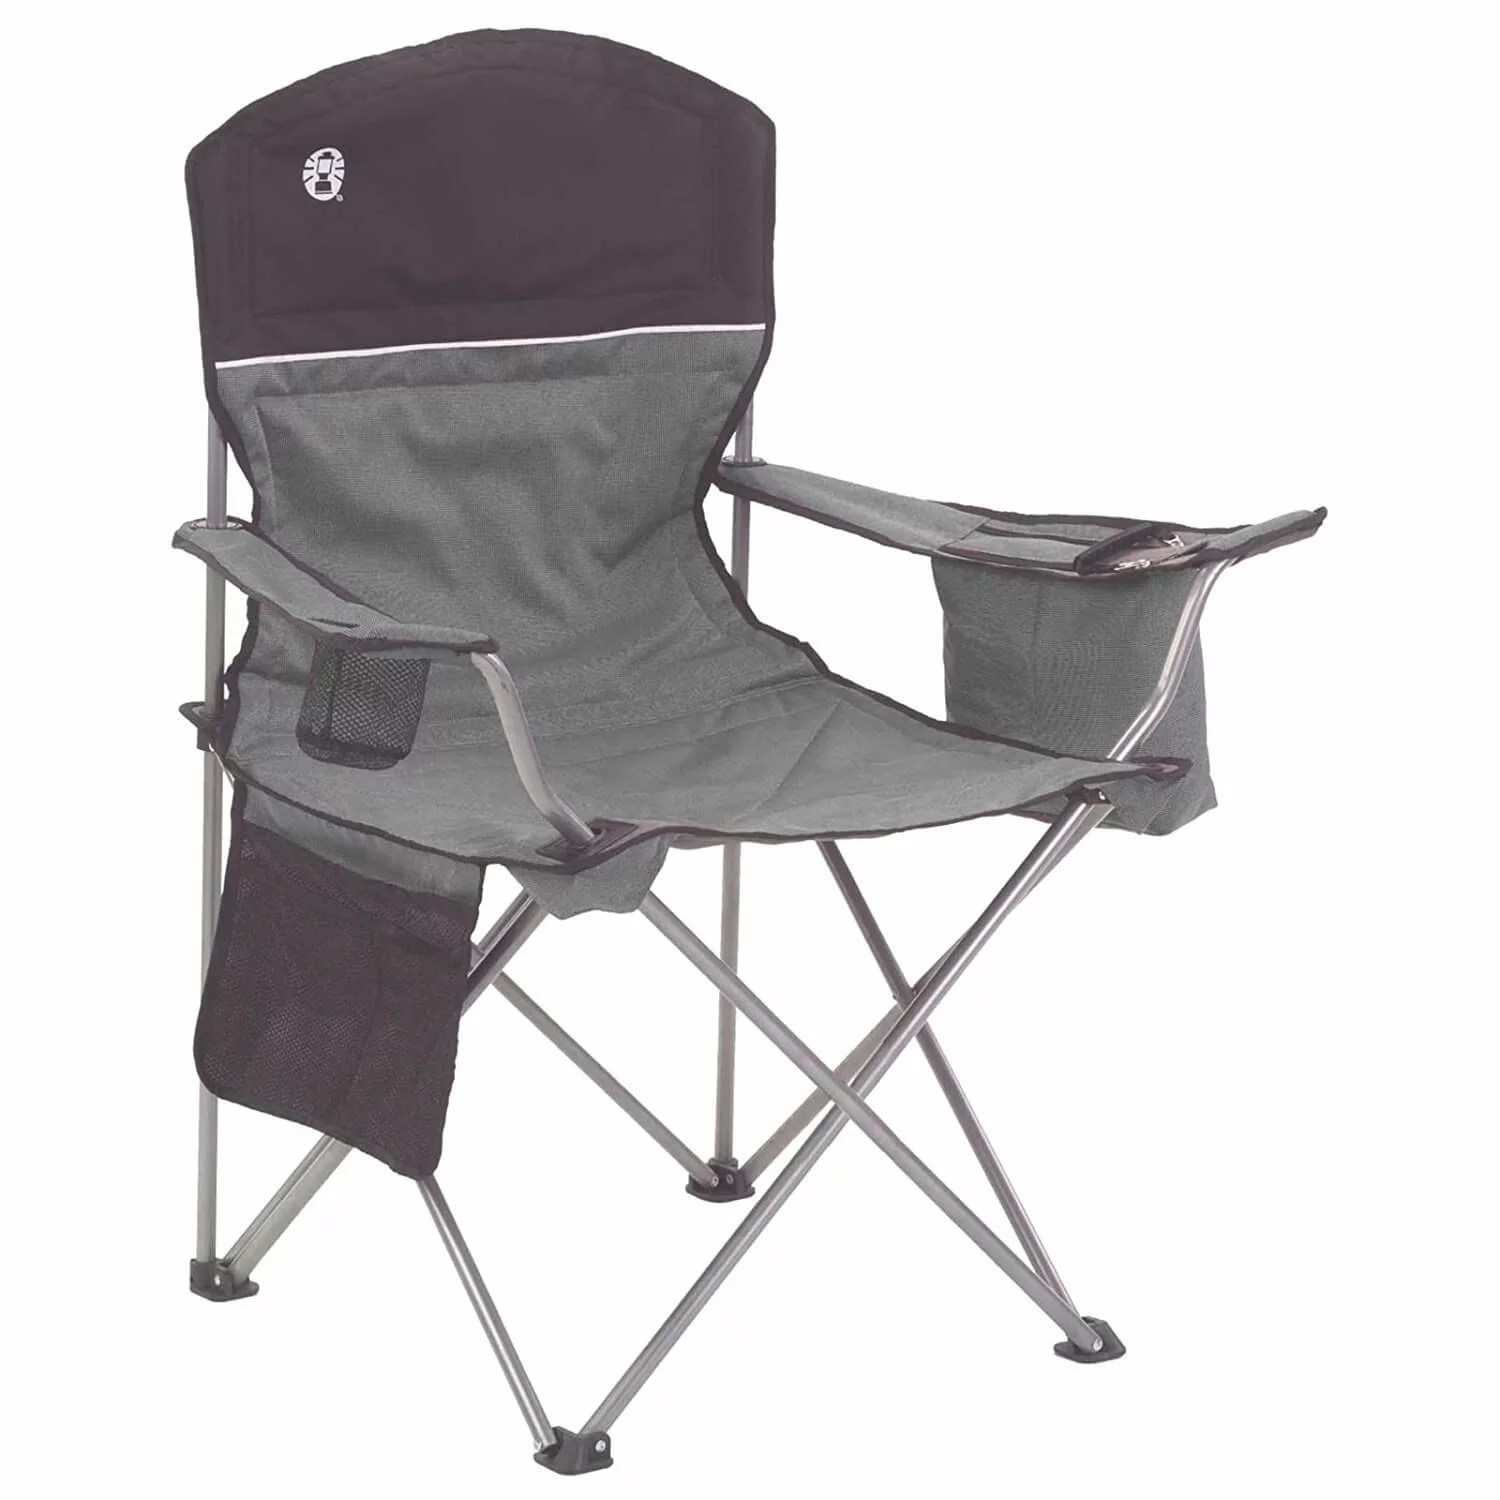 best folding quad chair covers and tablecloths 10 camp chairs reviewed full compared runnerclick